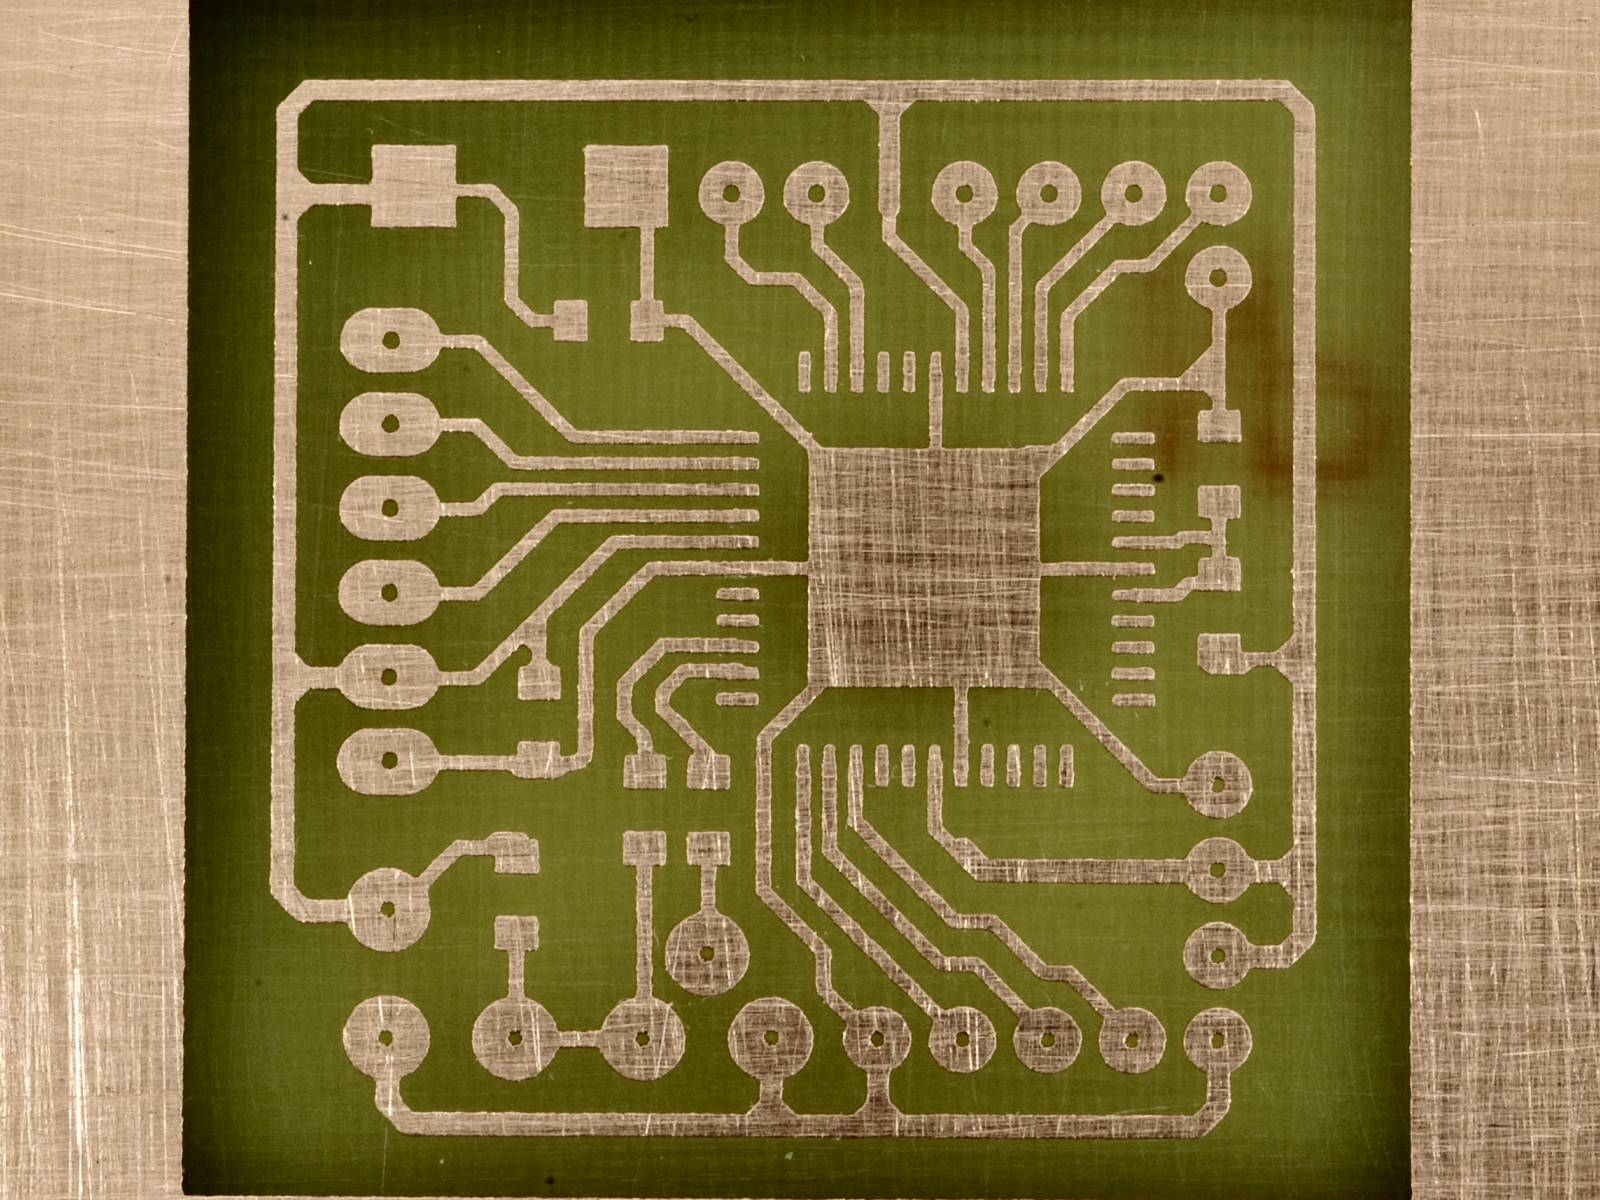 Picture of The Etchinator - Low Cost PCB Spray Etcher (under $100)